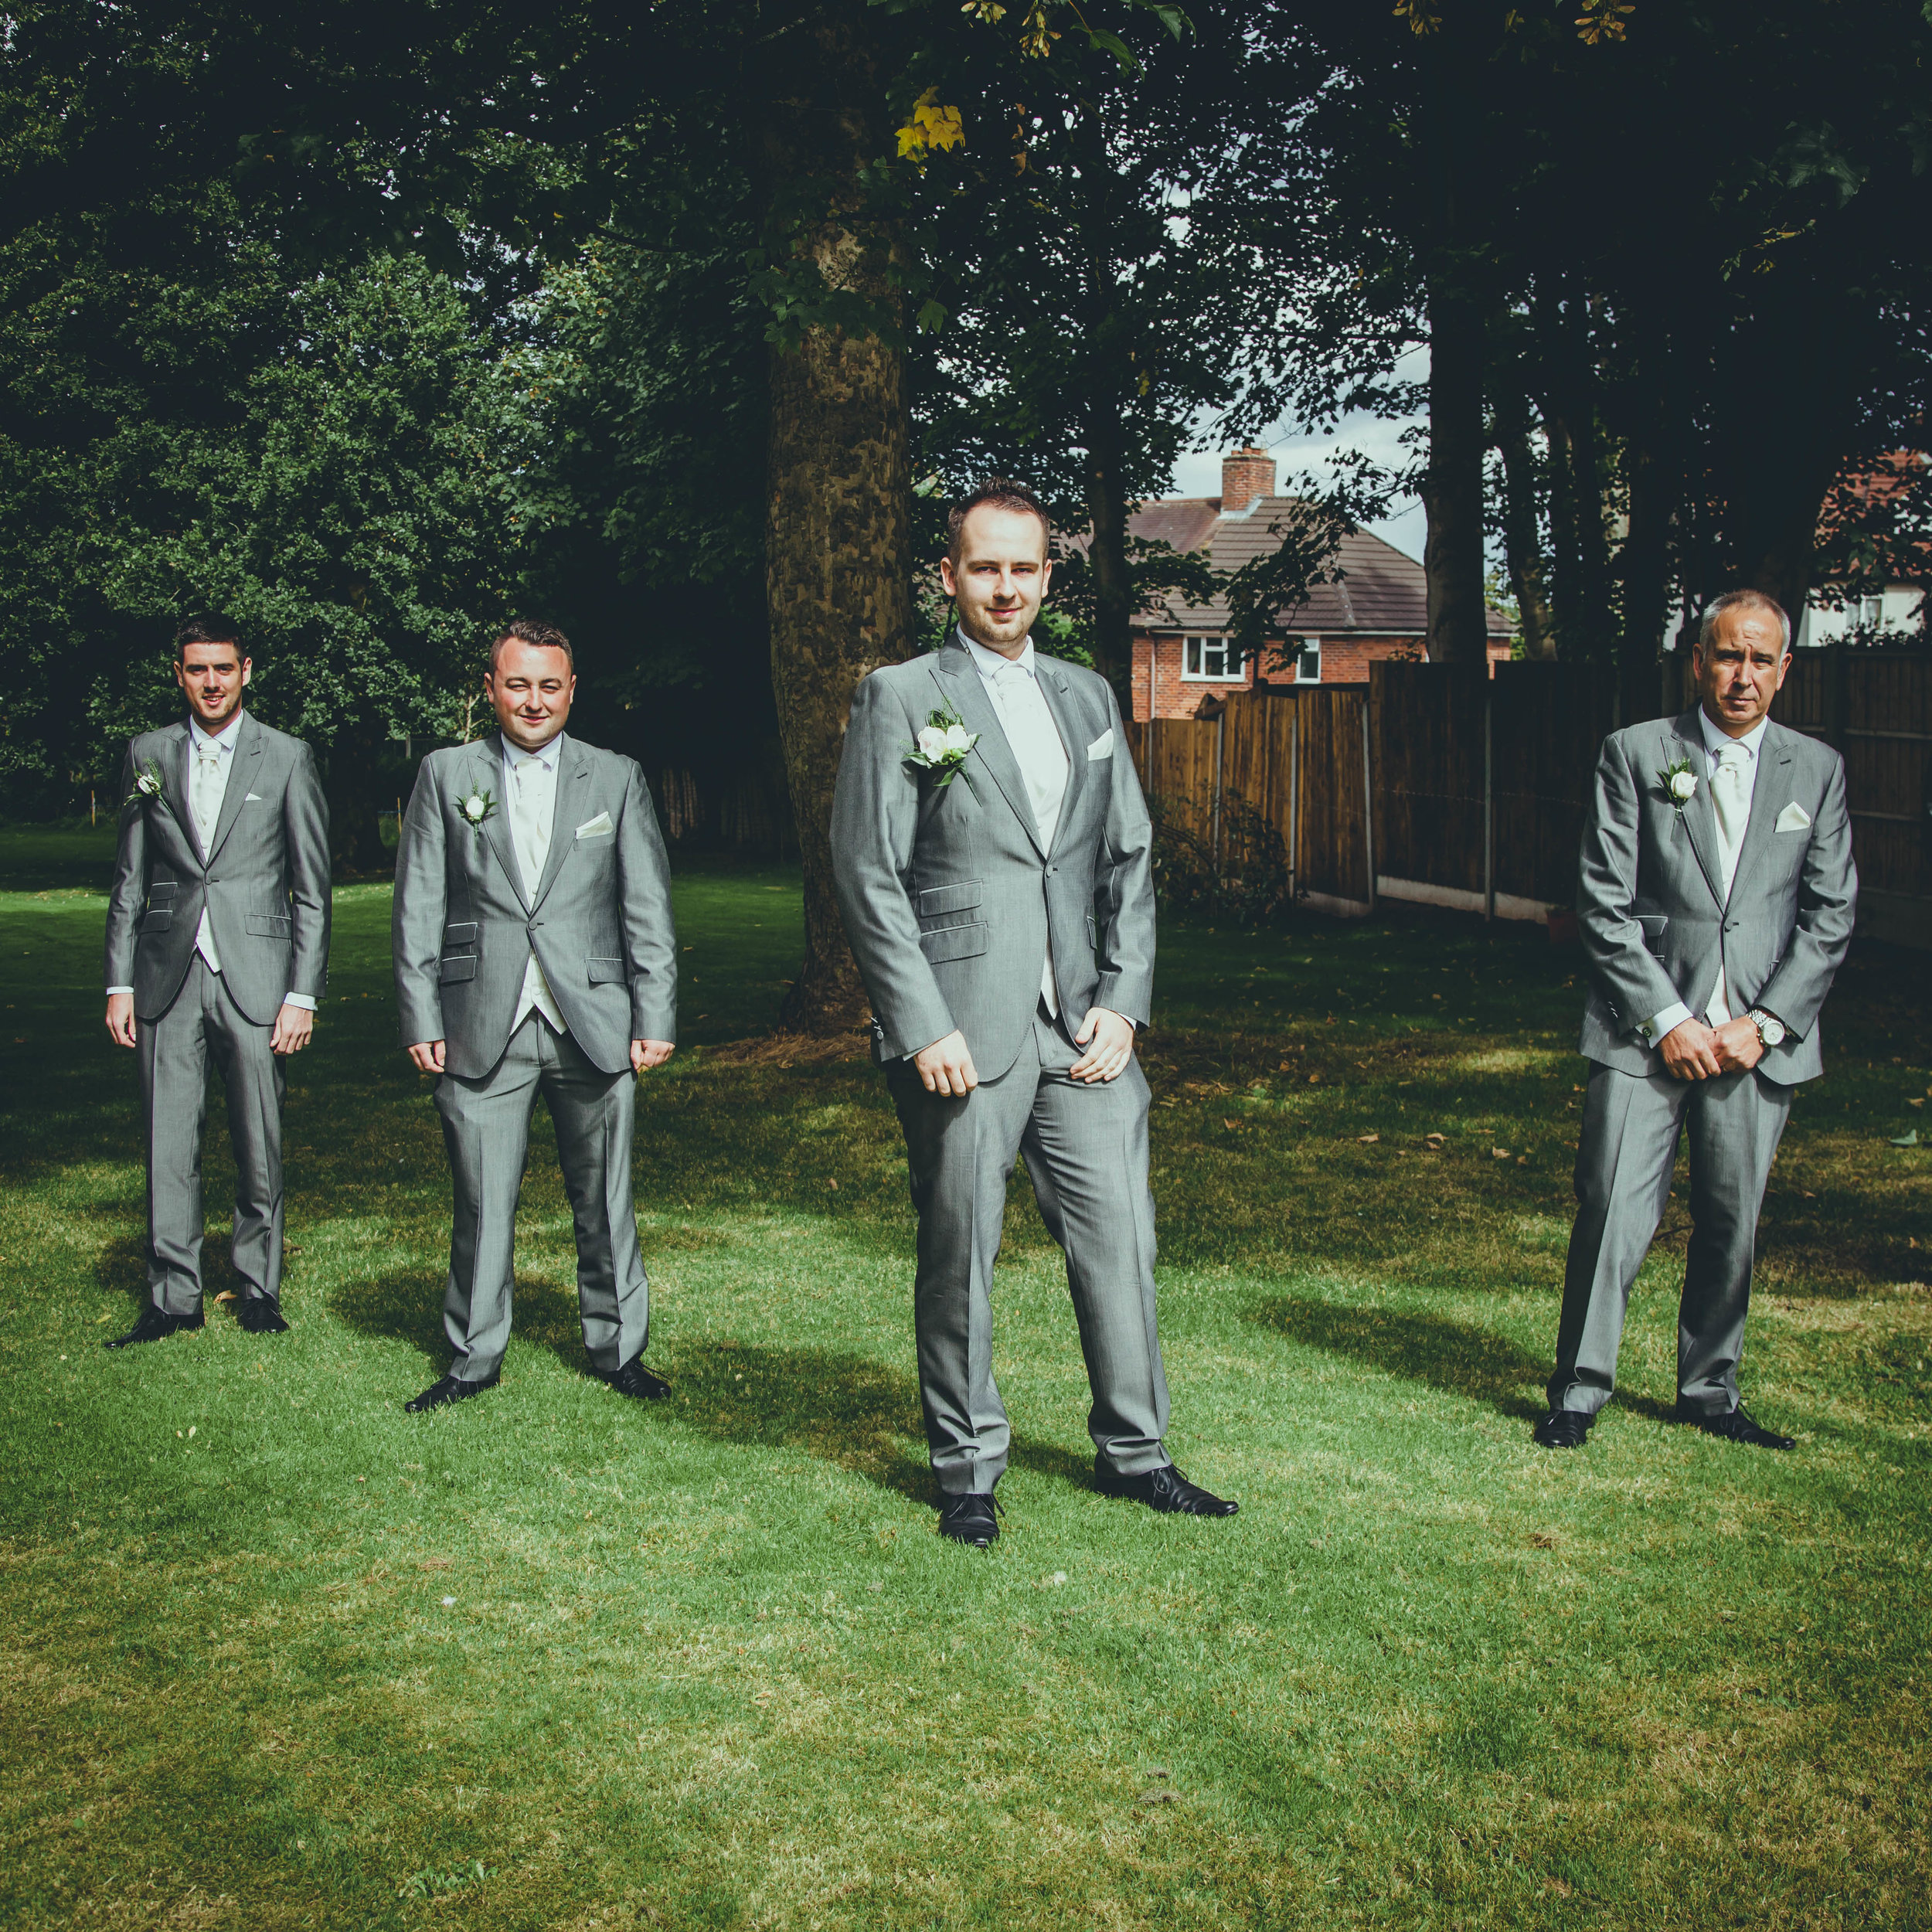 HOW ARD WEDDING PHOTOGRAPHY WEST MIDLANDS GR0OM PREP-1-8.JPG